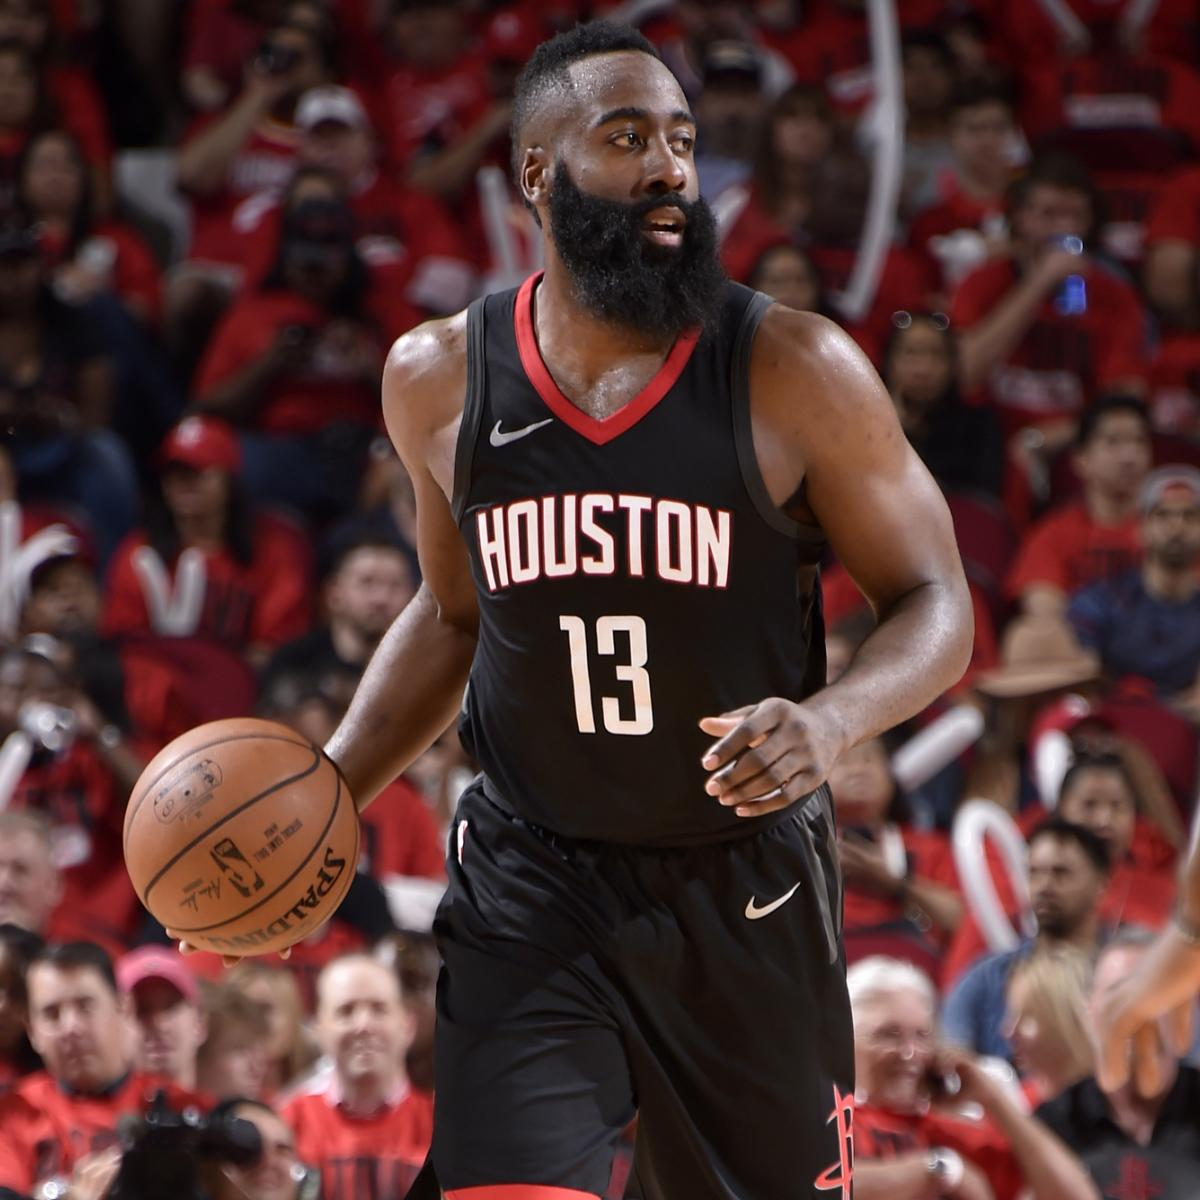 Rockets Jazz Game 1: James Harden Puts On Show Vs. Jazz: Highlights From